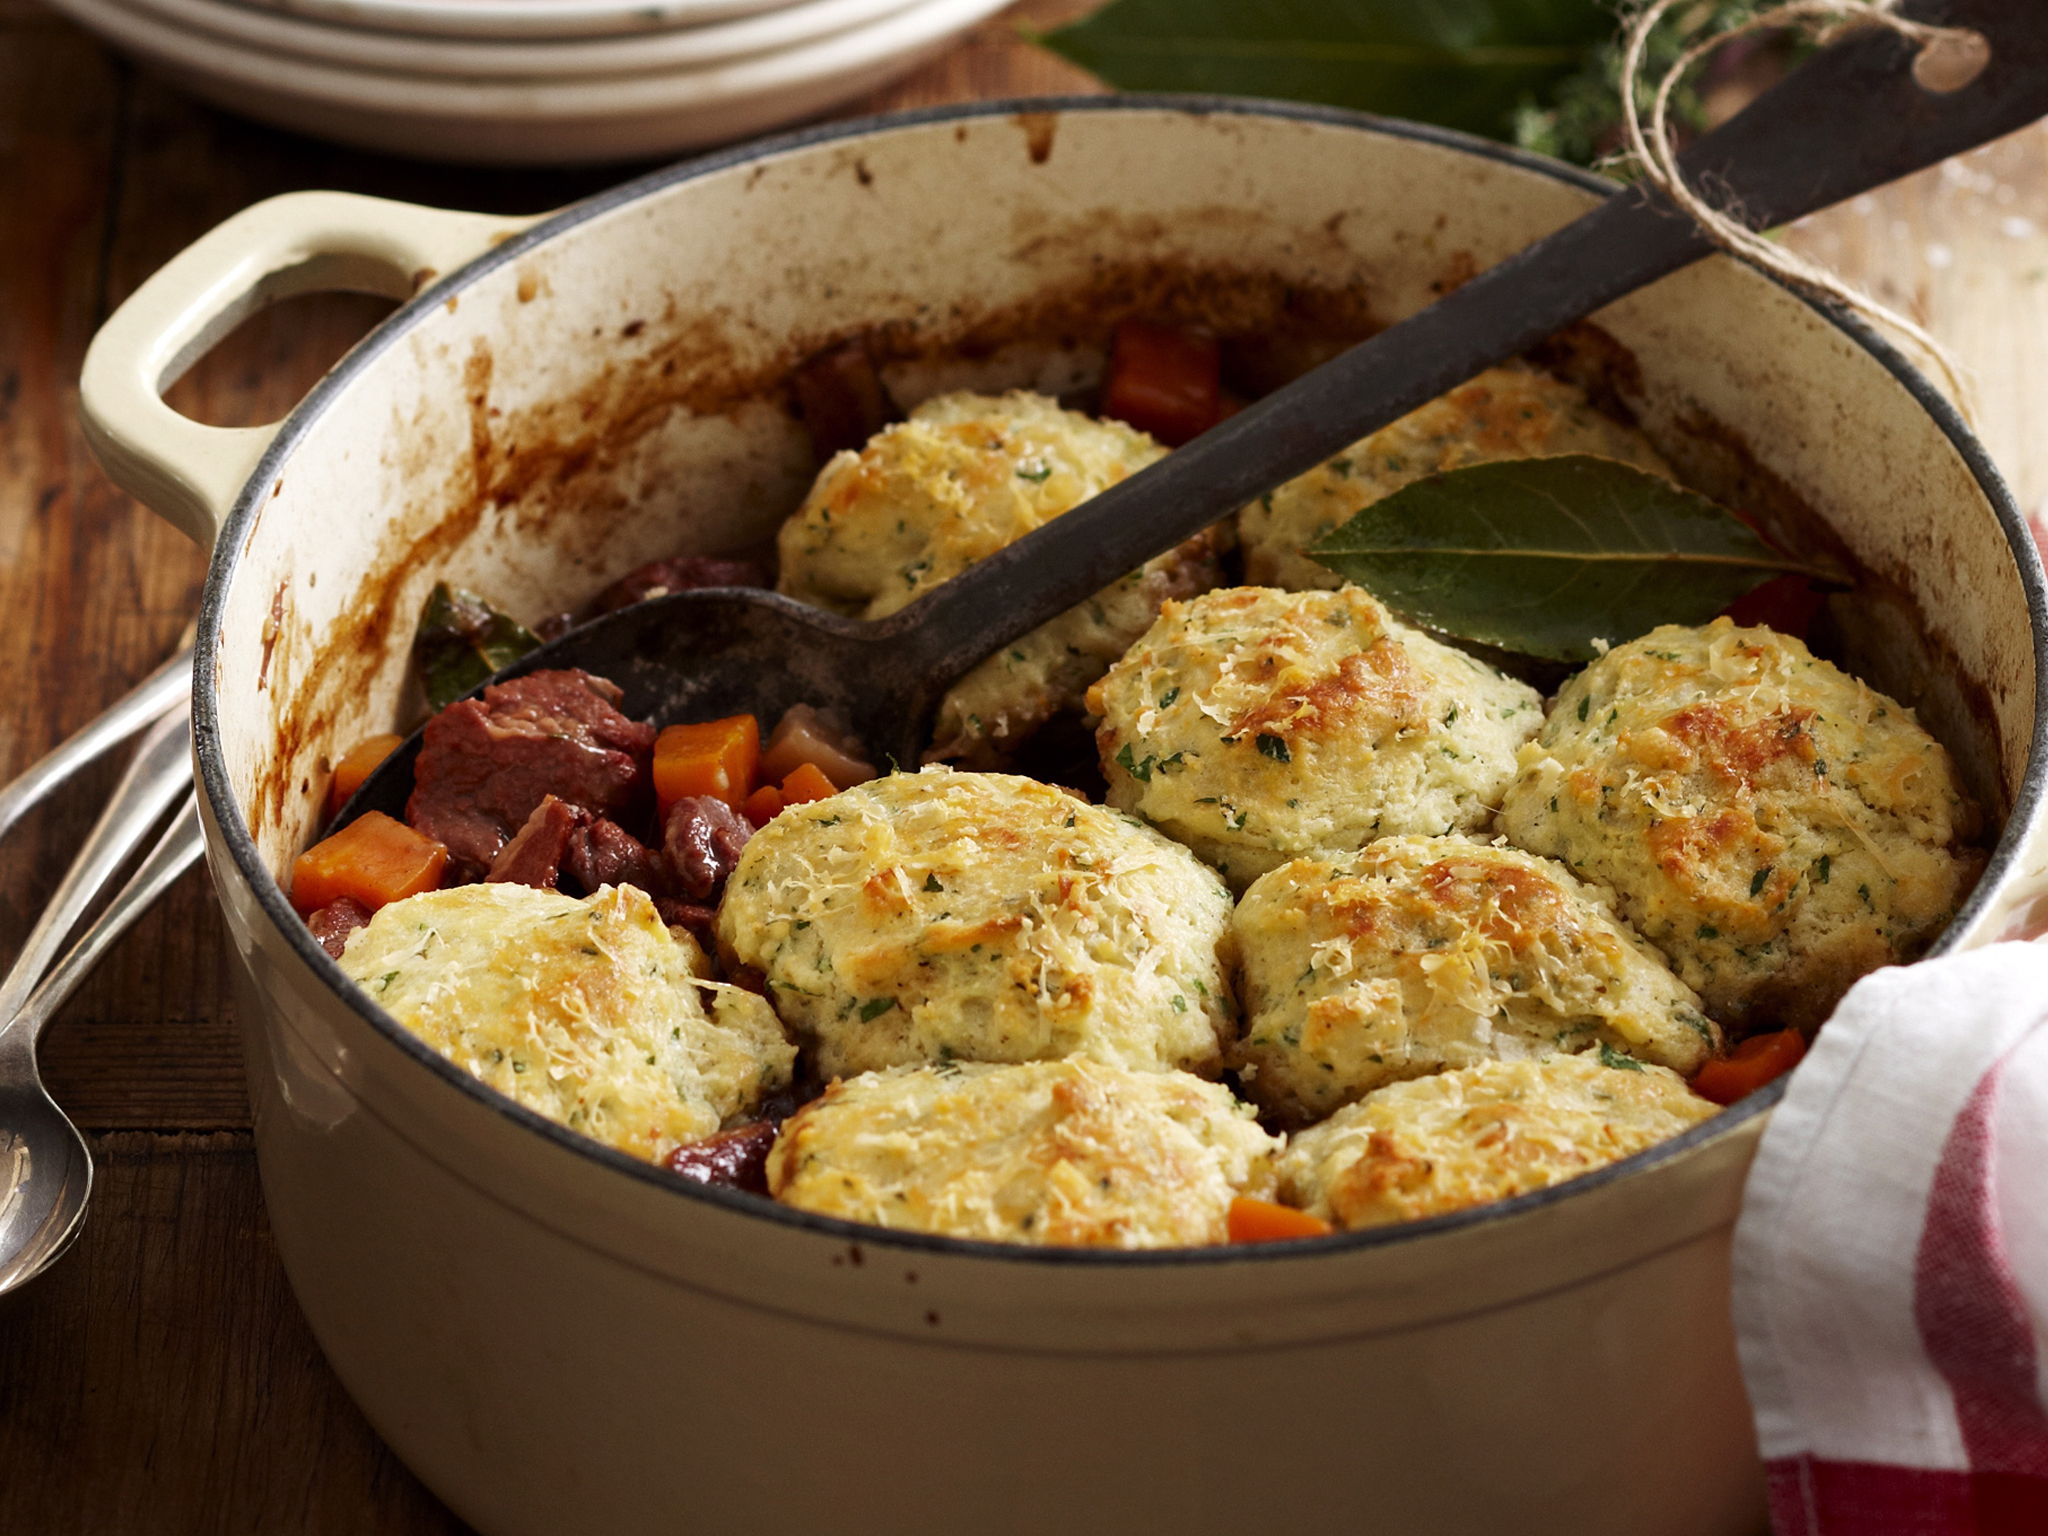 Old Fashioned Beef Stew Recipe With Dumplings